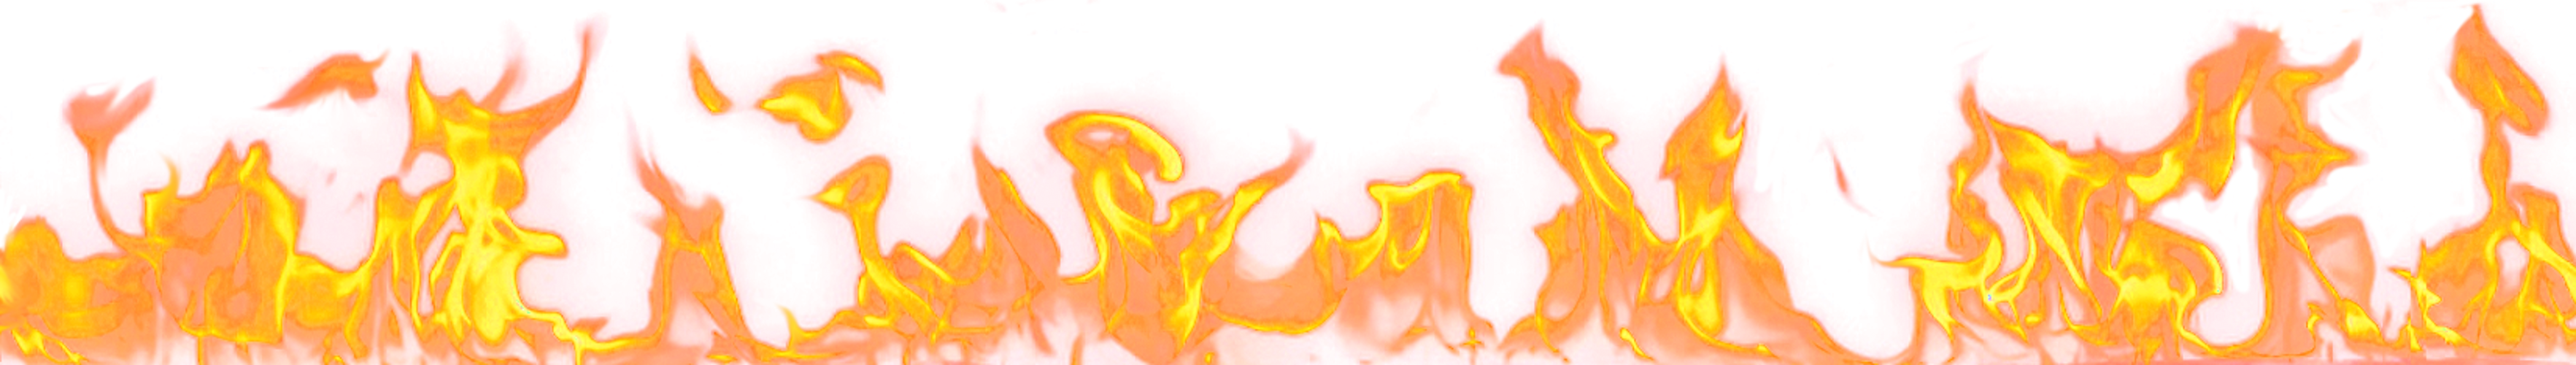 Flames clipart png. Download fire free transparent